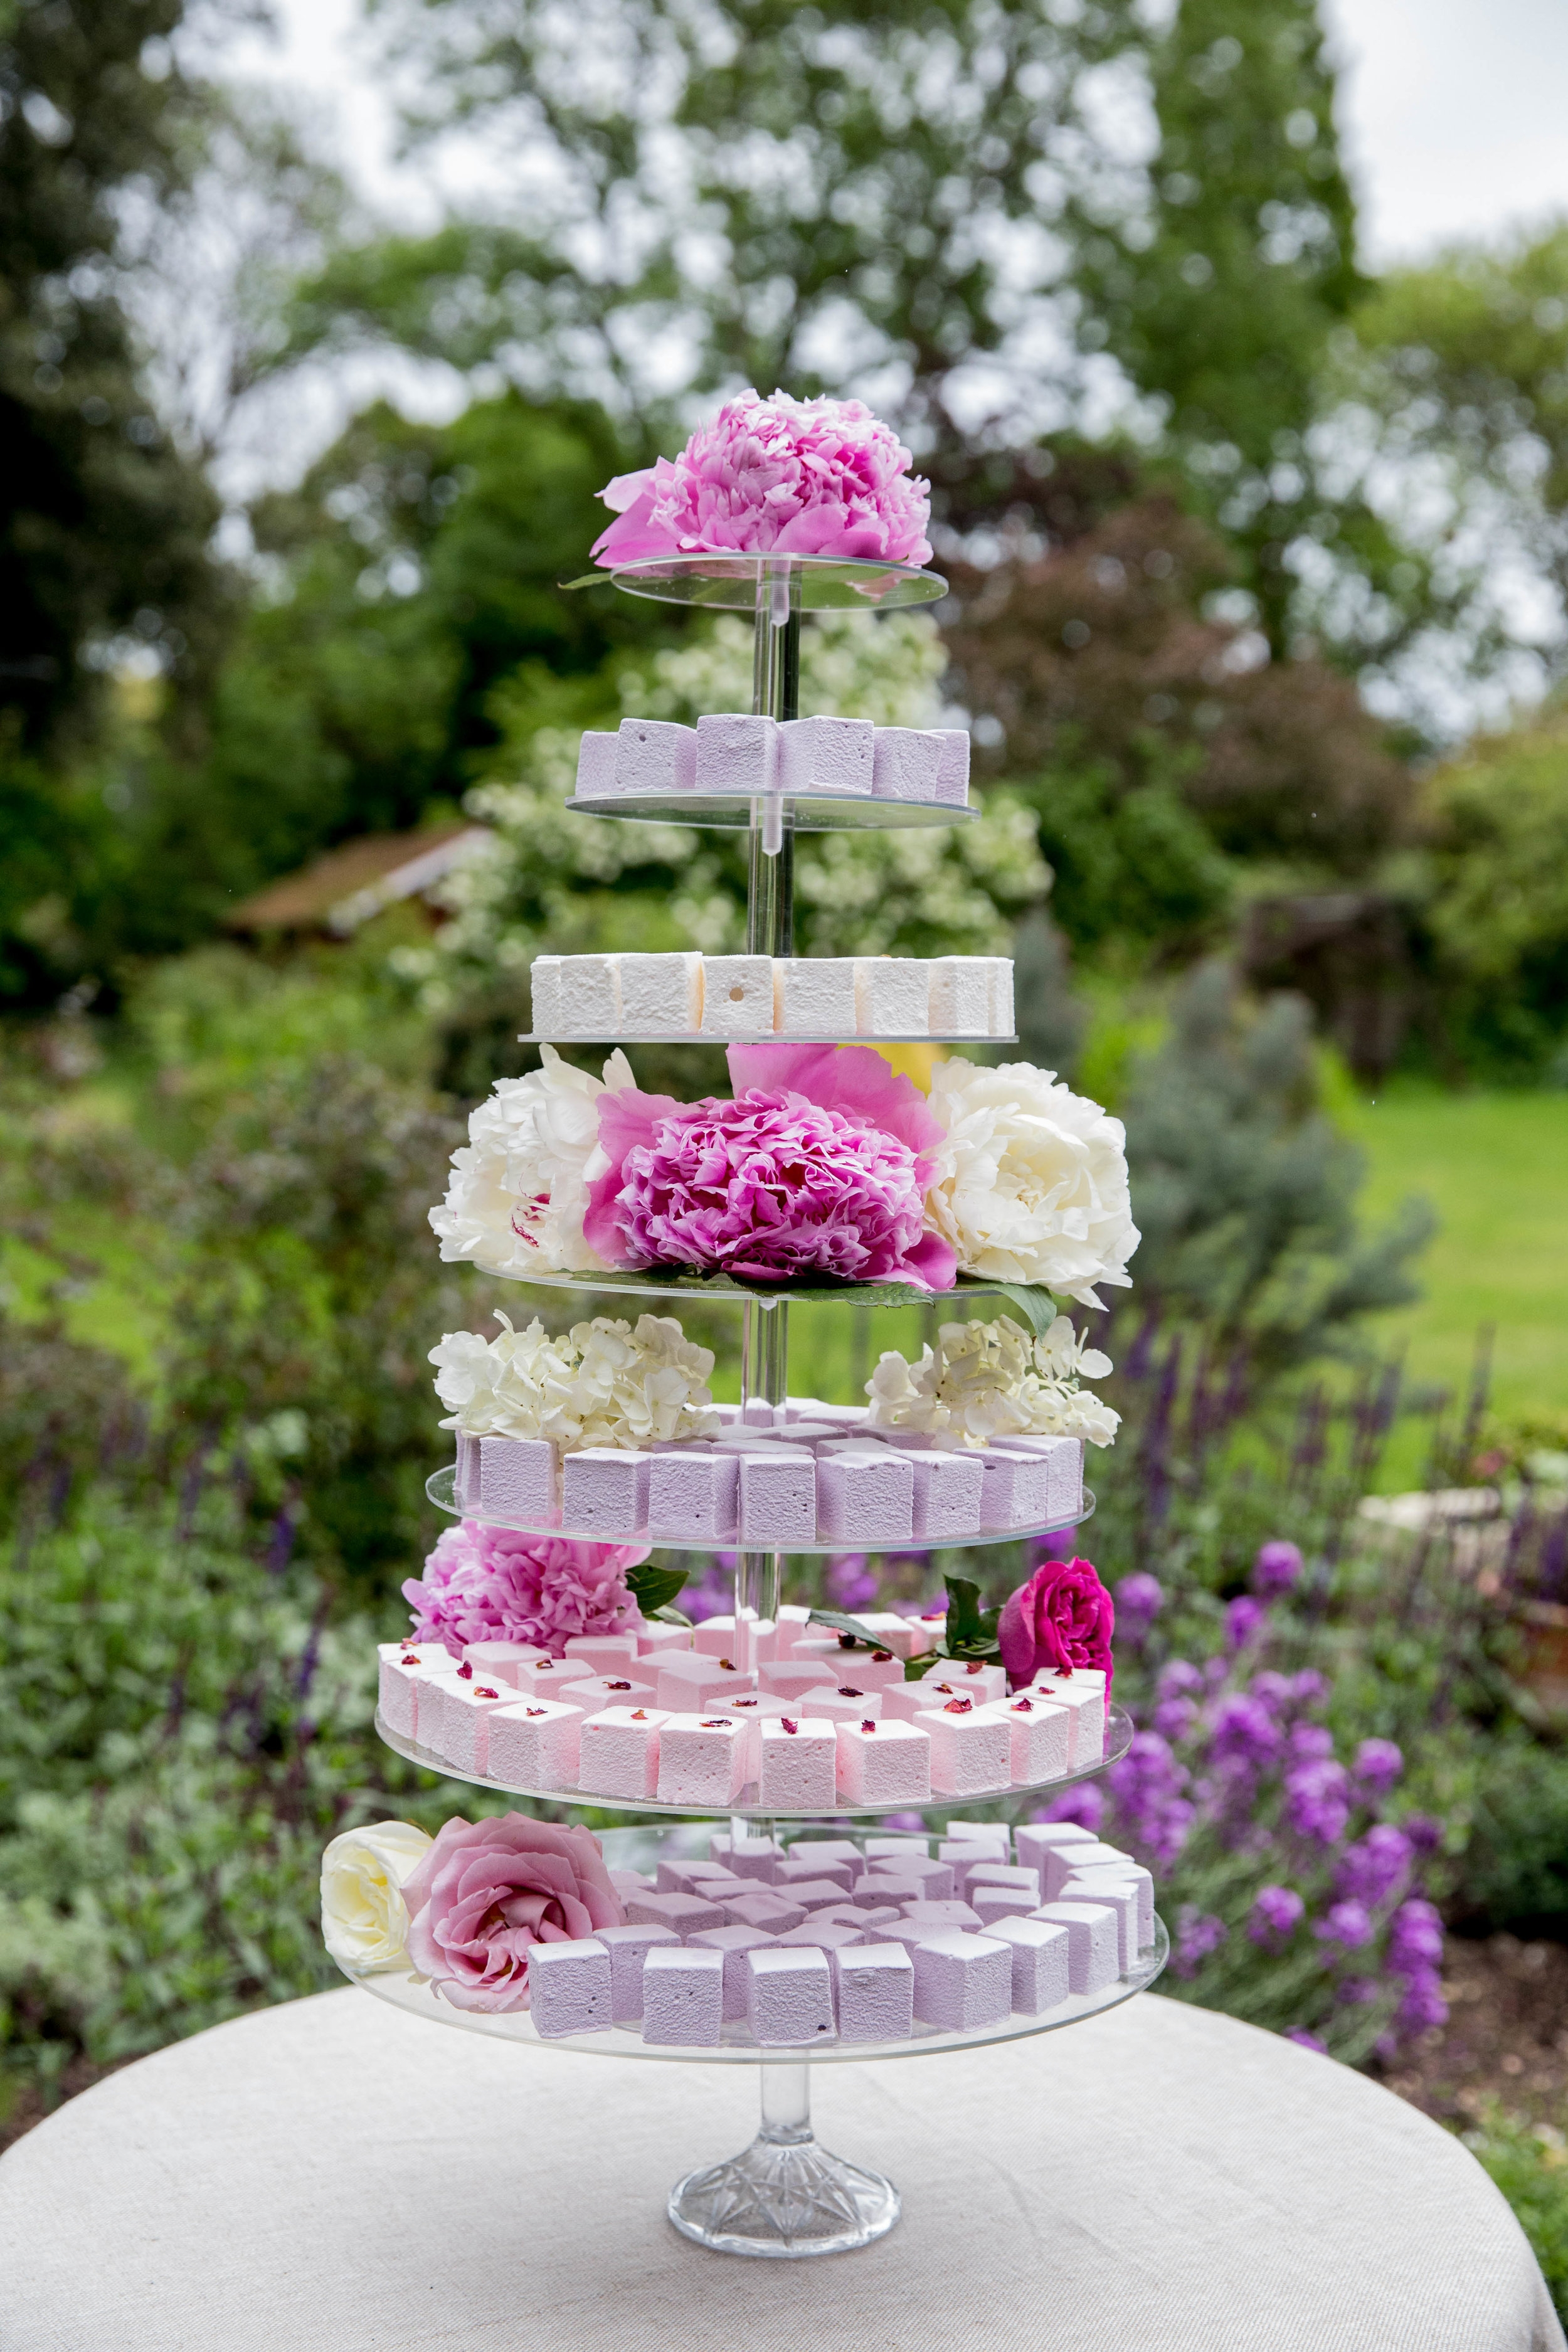 7-Tier Marshmallow Tower crammed with 300 marshmallows. Ask your florist to supply additional flowers to co-ordinate the wedding flowers with the marshmallows